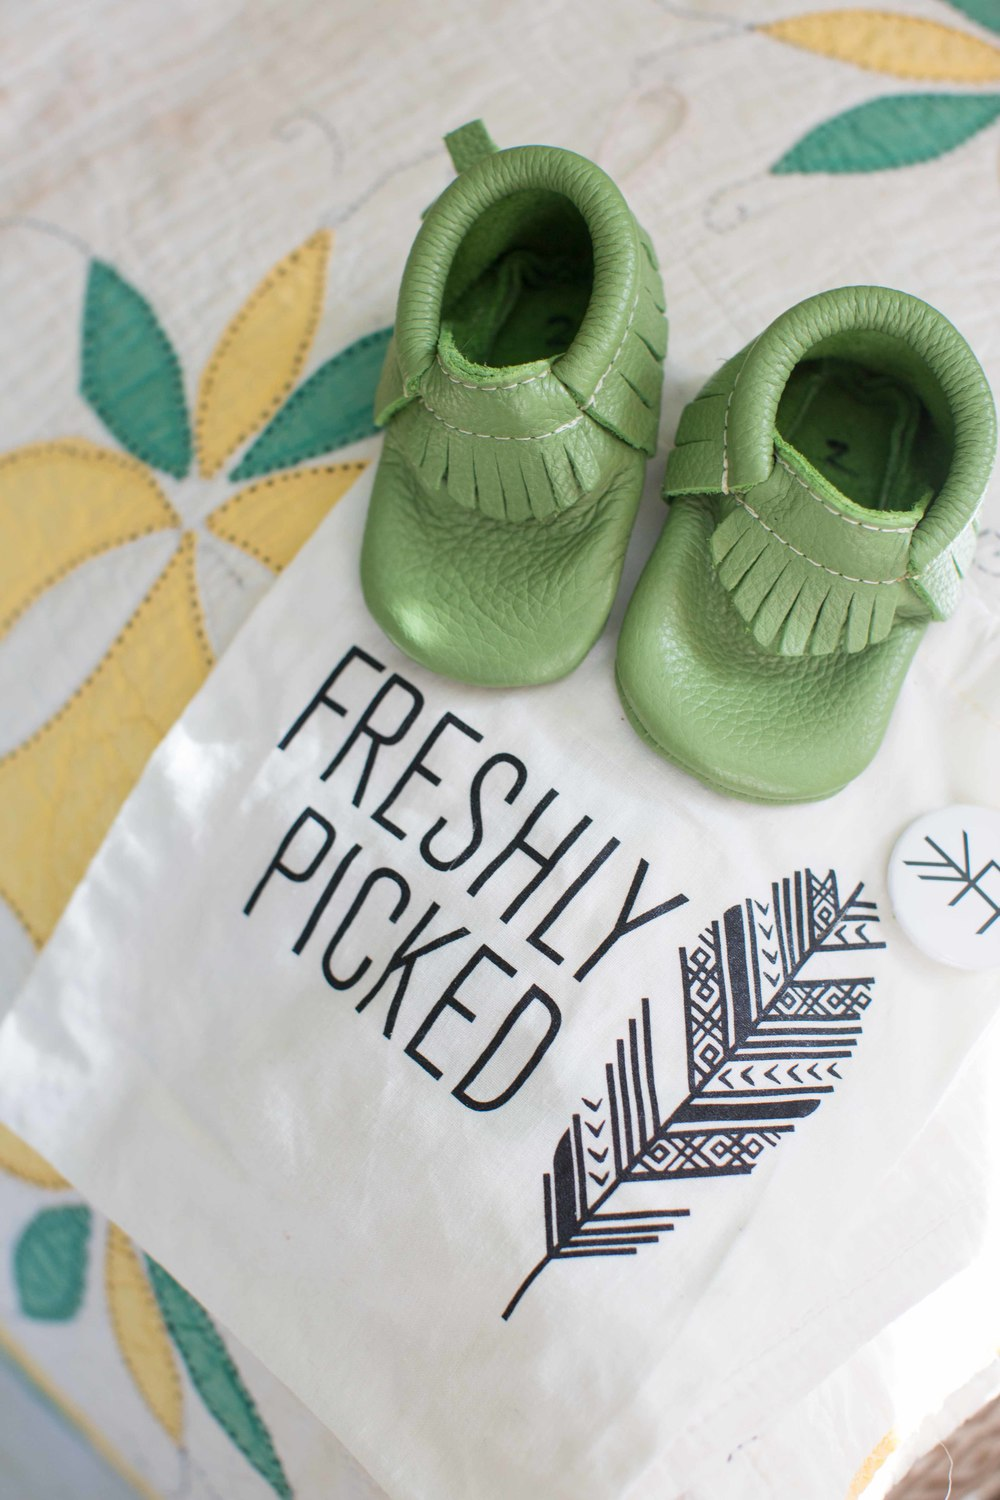 Freshly Picked's adorable packaging